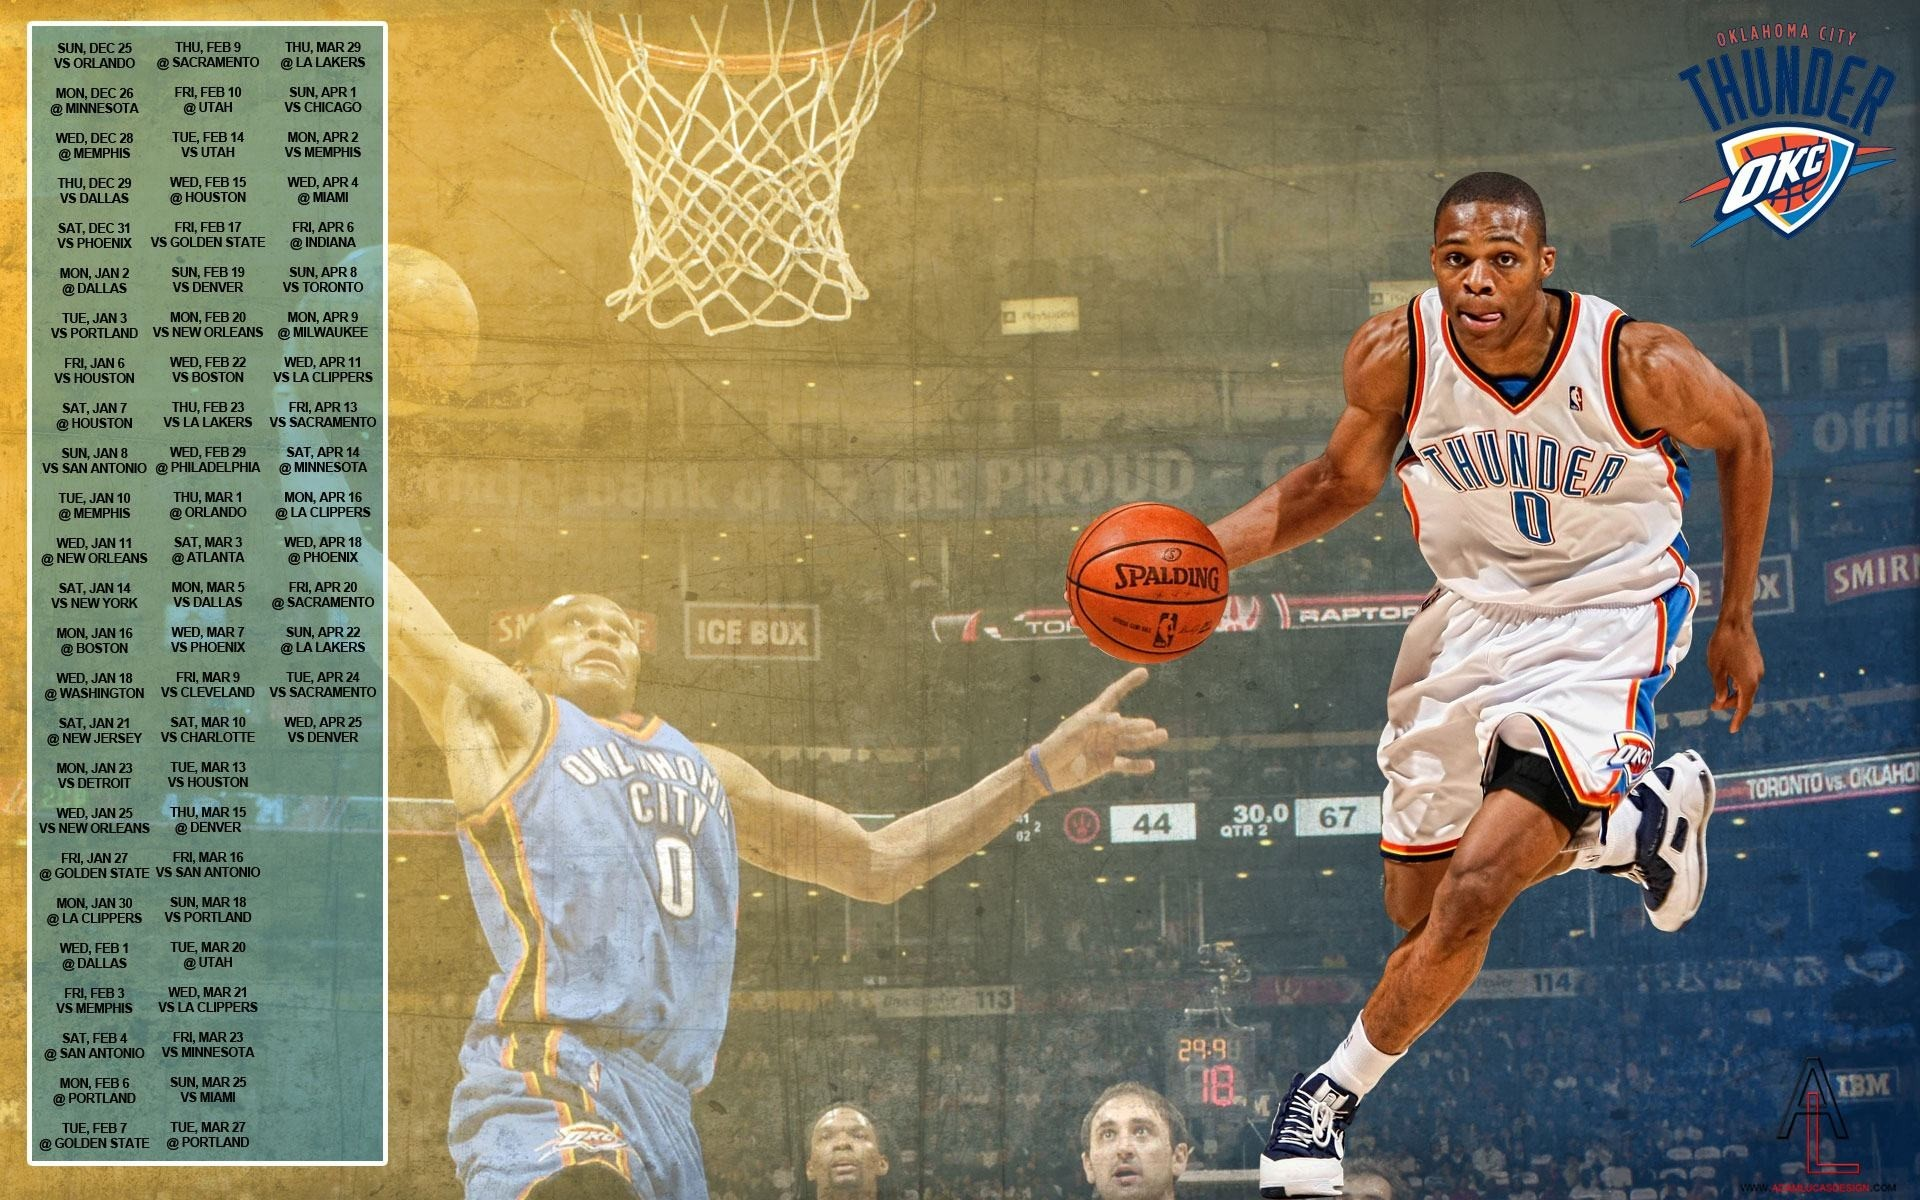 1920x1200 Wallpapers Backgrounds - Russell Westbrook wallpaper made Adam Lucas Designs